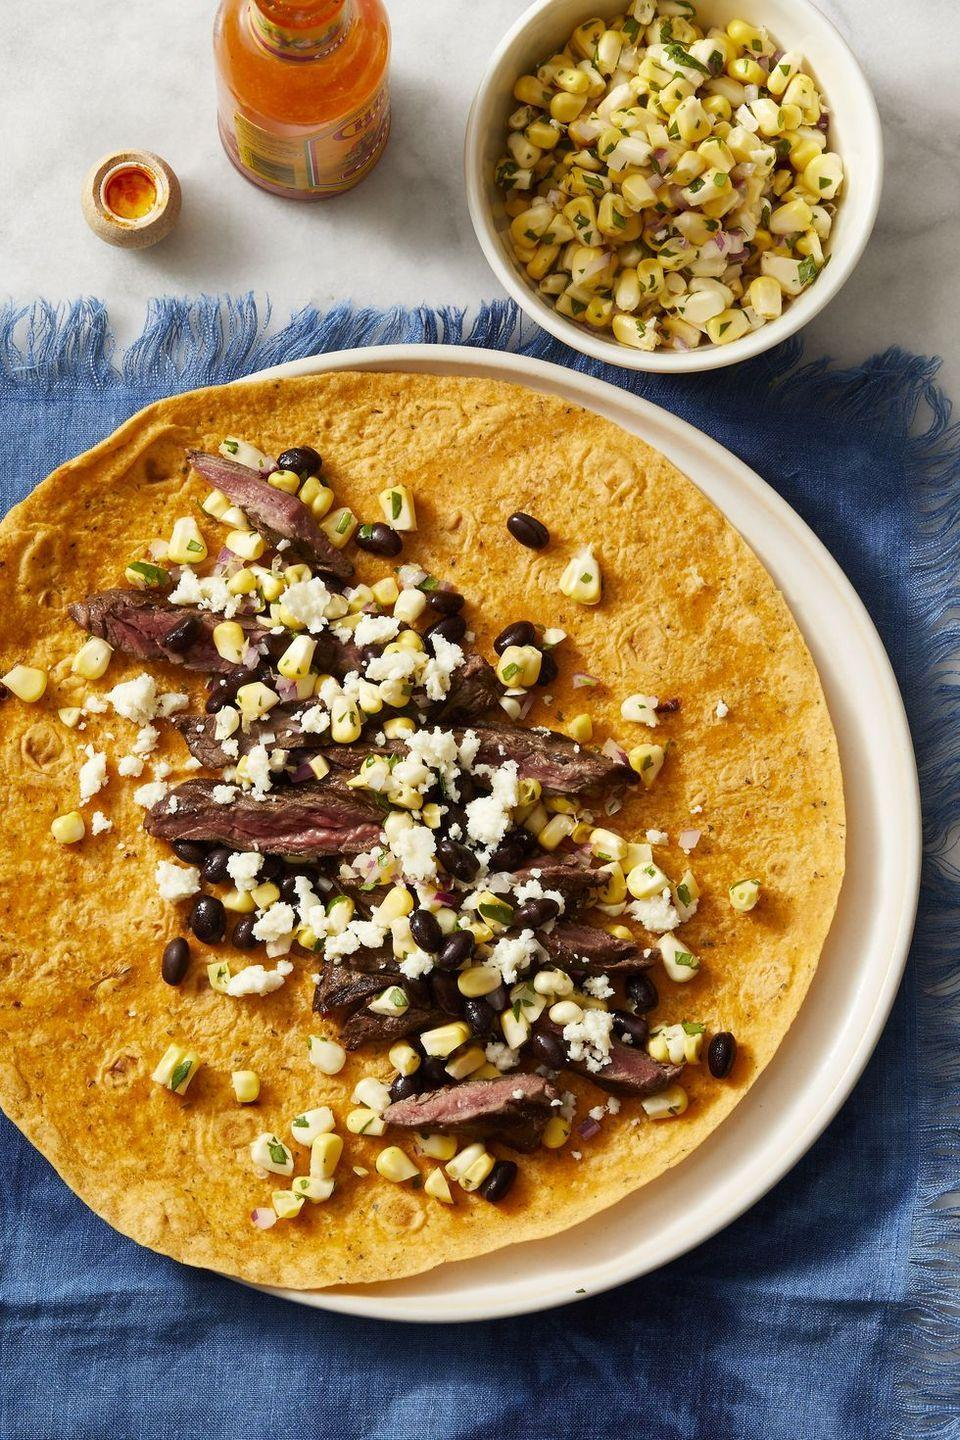 """<p>Looking for a new twist on Taco Tuesday? Swap out the taco shell for a delicious wrap, then fill up with sliced steak, corn, cilantro, black beans, and queso fresco.</p><p><em><a href=""""https://www.goodhousekeeping.com/food-recipes/a28223751/southwest-steak-wraps-recipe/"""" rel=""""nofollow noopener"""" target=""""_blank"""" data-ylk=""""slk:Get the recipe for Southwest Steak Wraps »"""" class=""""link rapid-noclick-resp"""">Get the recipe for Southwest Steak Wraps »</a></em></p>"""